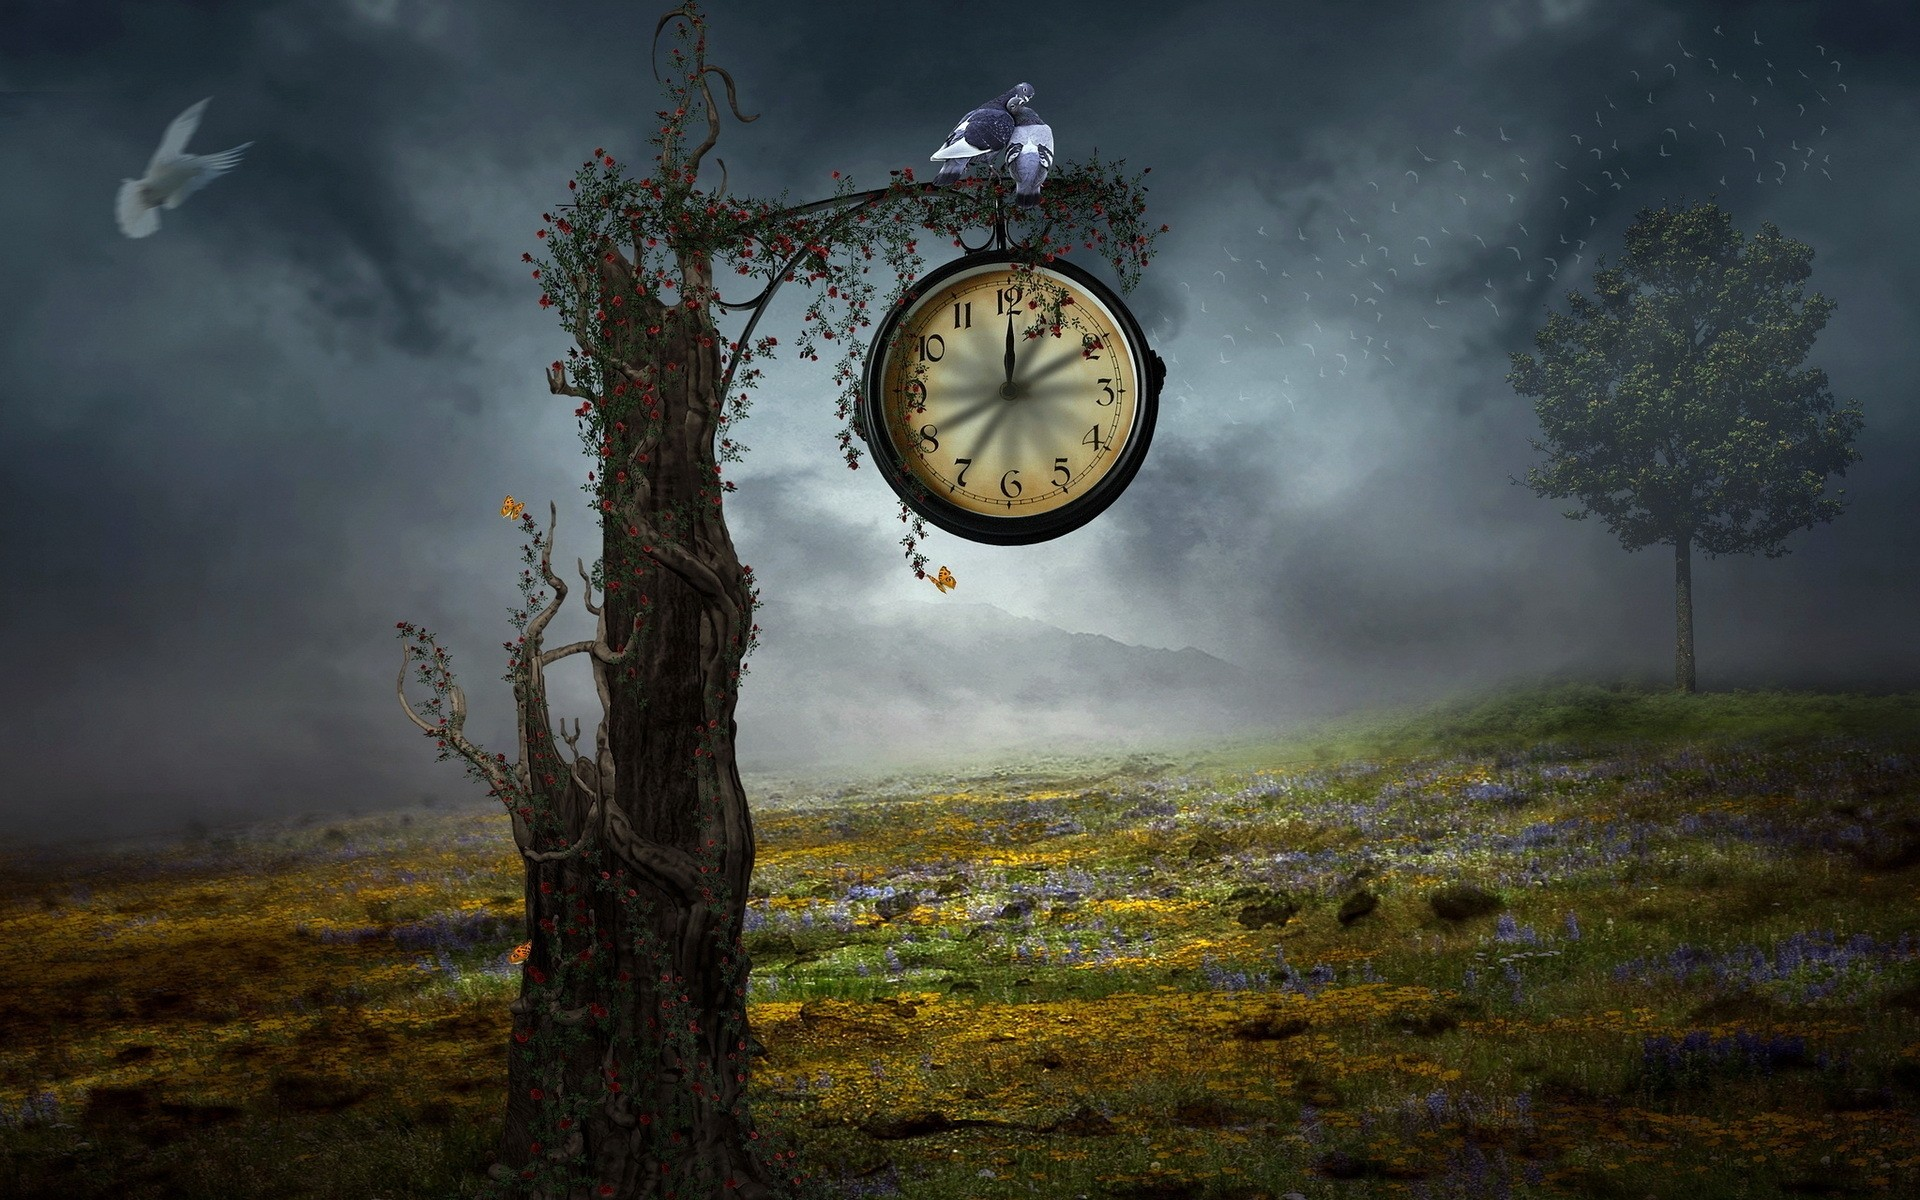 fantasy dawn sunset sky nature fog landscape time early outdoors tree evening sun travel dusk wood clock grass flower tree vintage watch background